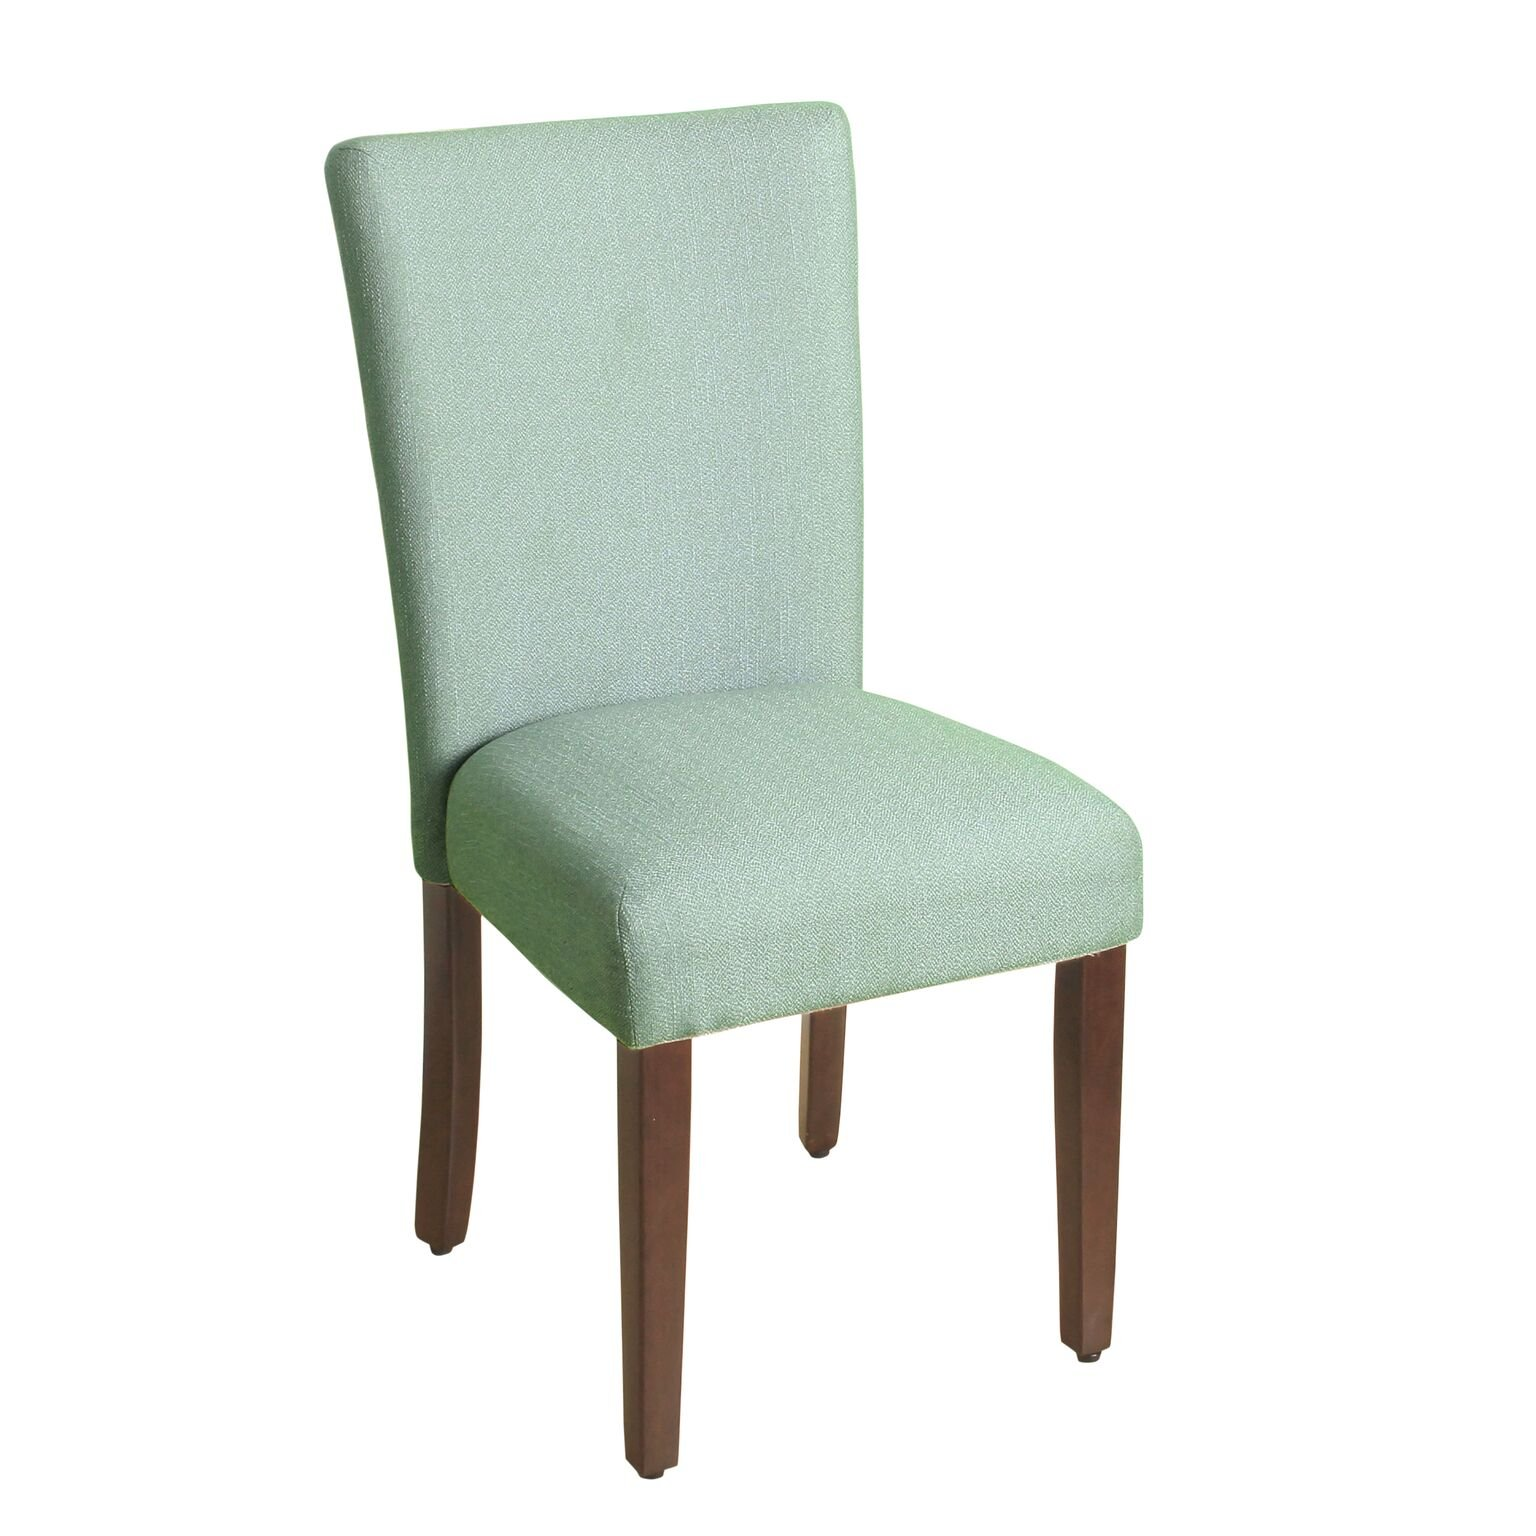 HomePop K6805-F2092 Parsons Classic Dining Chair Room Tables, Single Pack, Teal